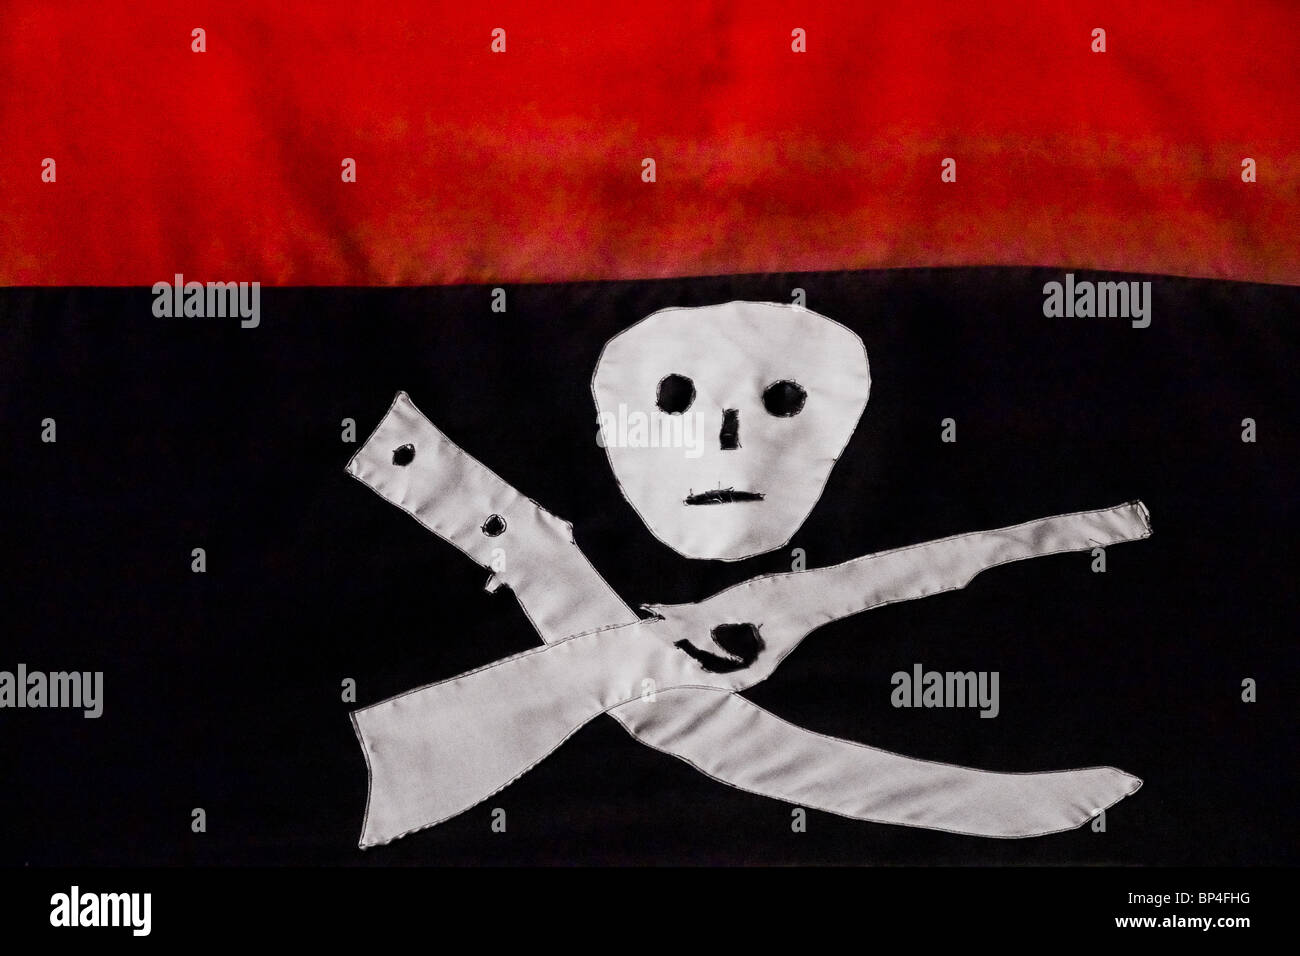 The black-and-red flag of the FSLN has been used by Sandinistas during the guerrilla war in the 1970s, Leon, Nicaragua. - Stock Image